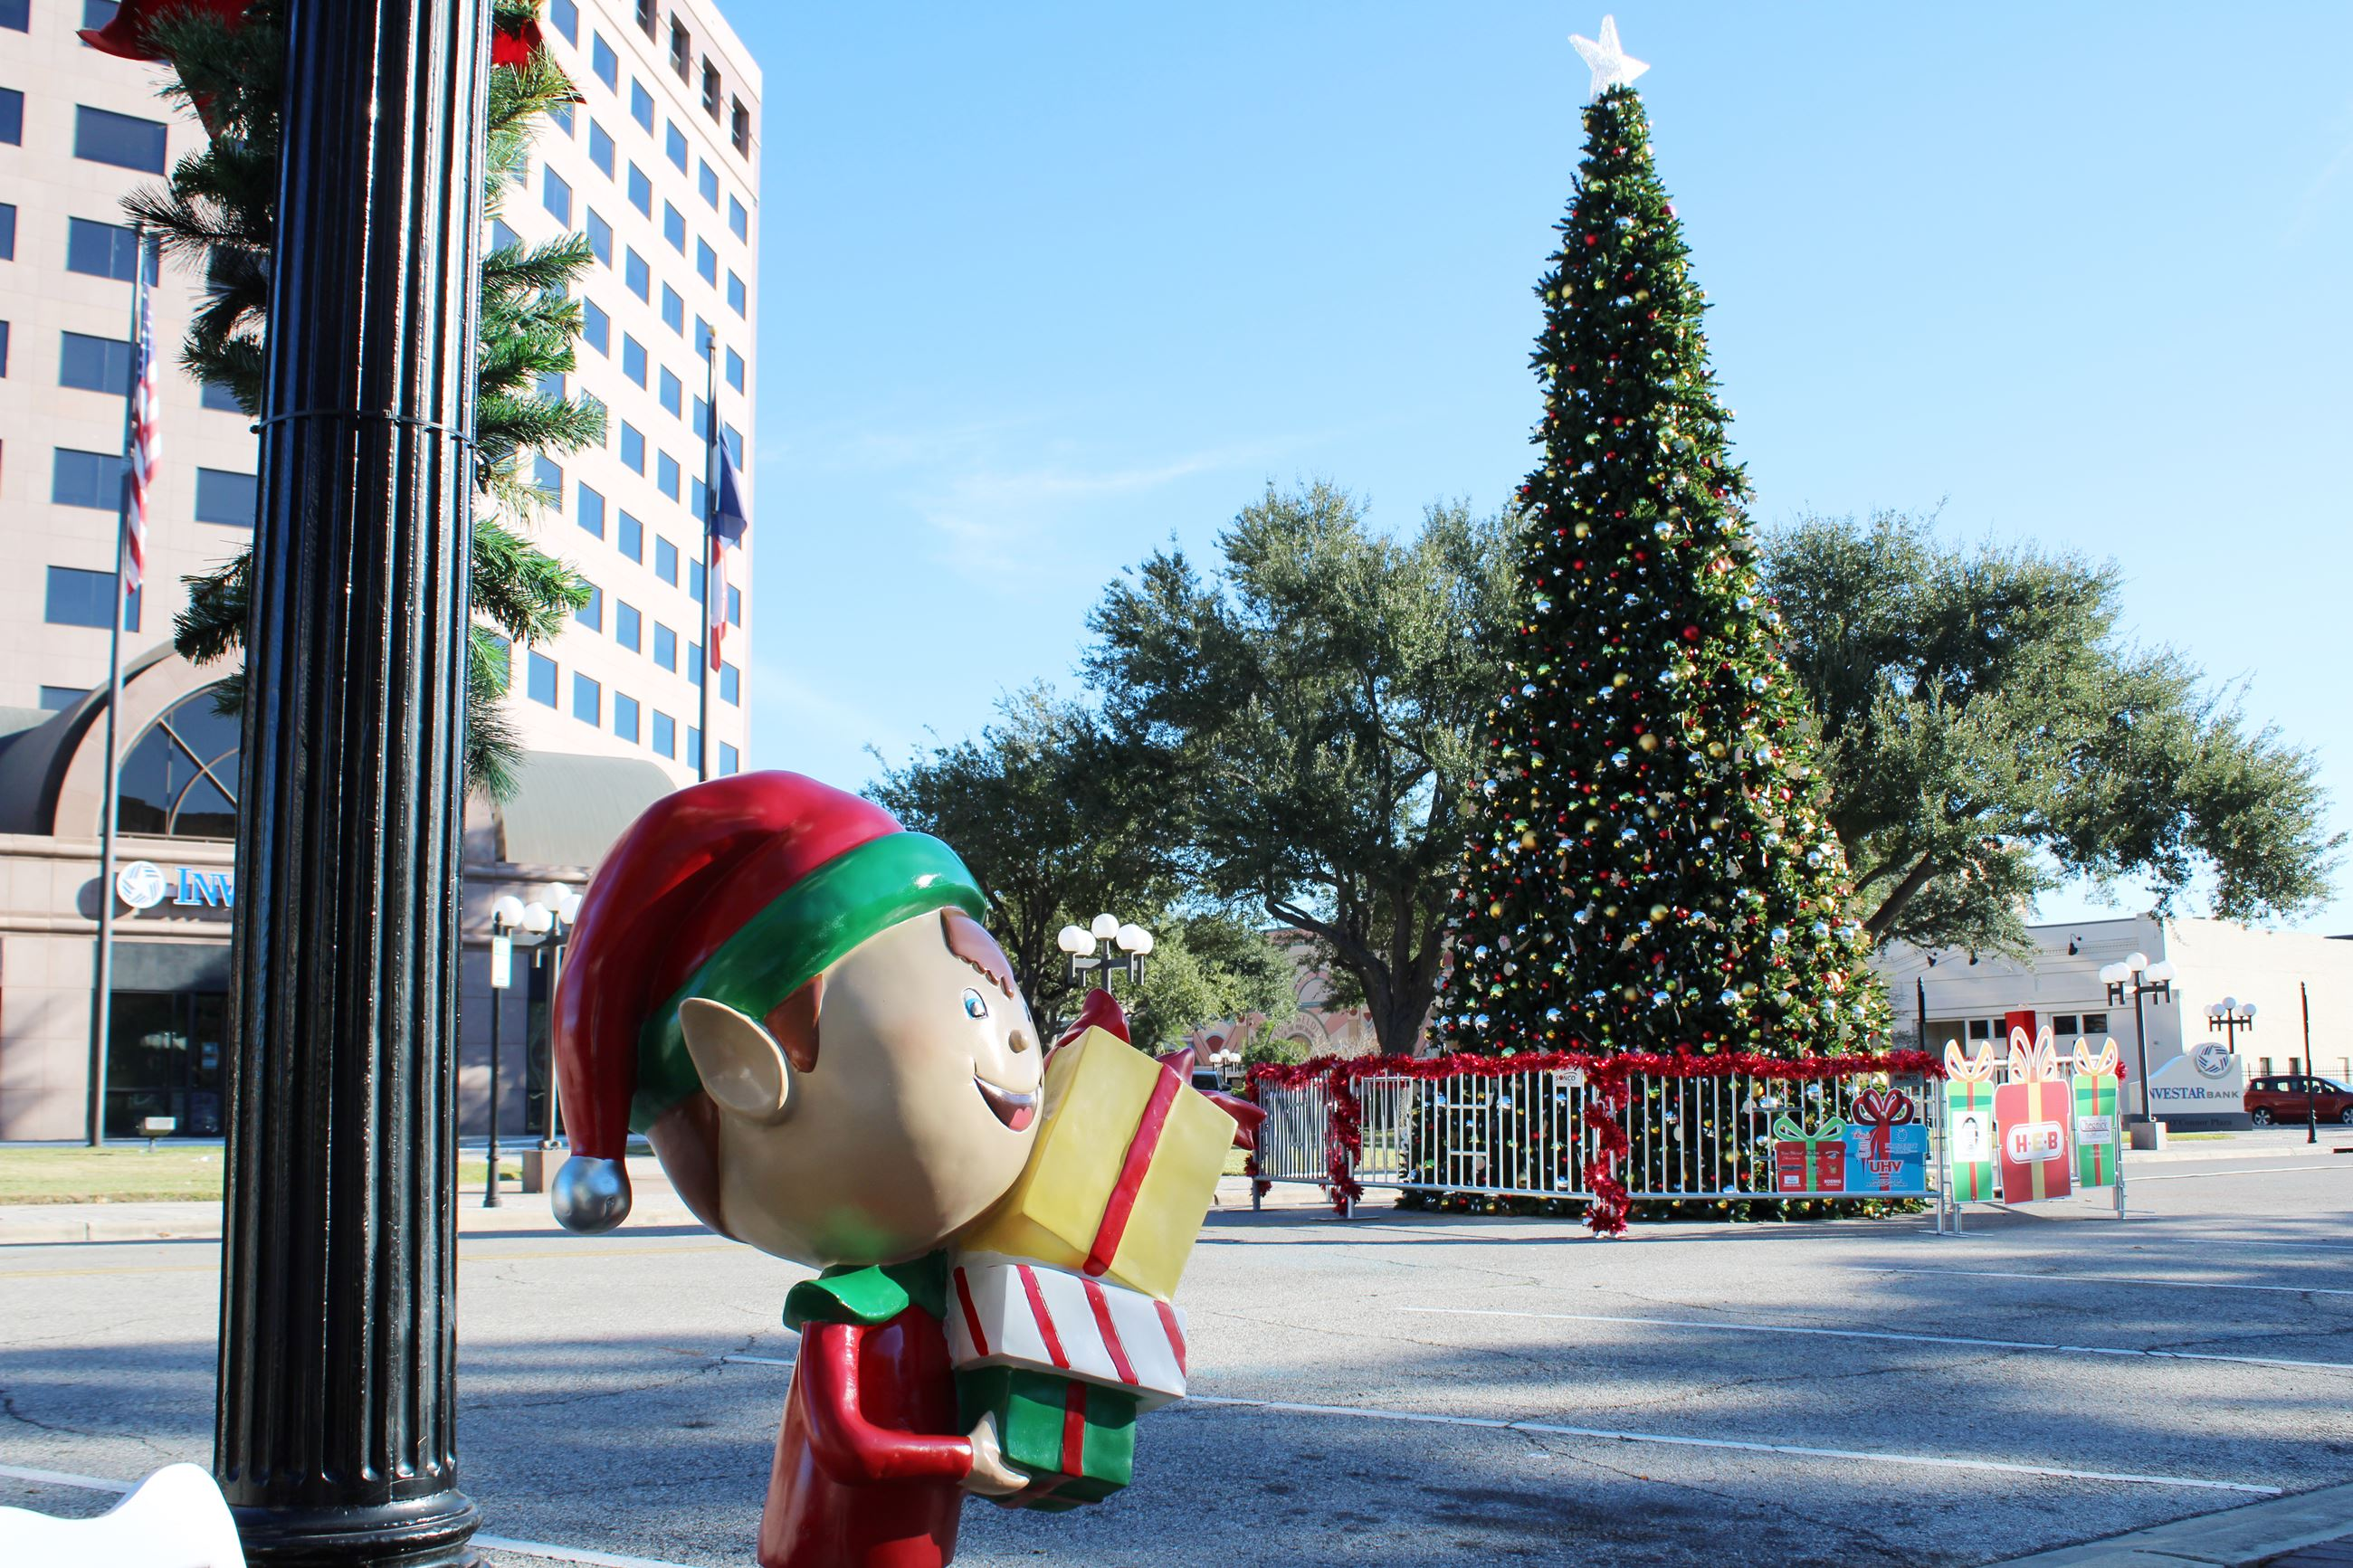 A plexiglass elf sculpture stands near a lamppost with the H-E-B Christmas Tree in the background.